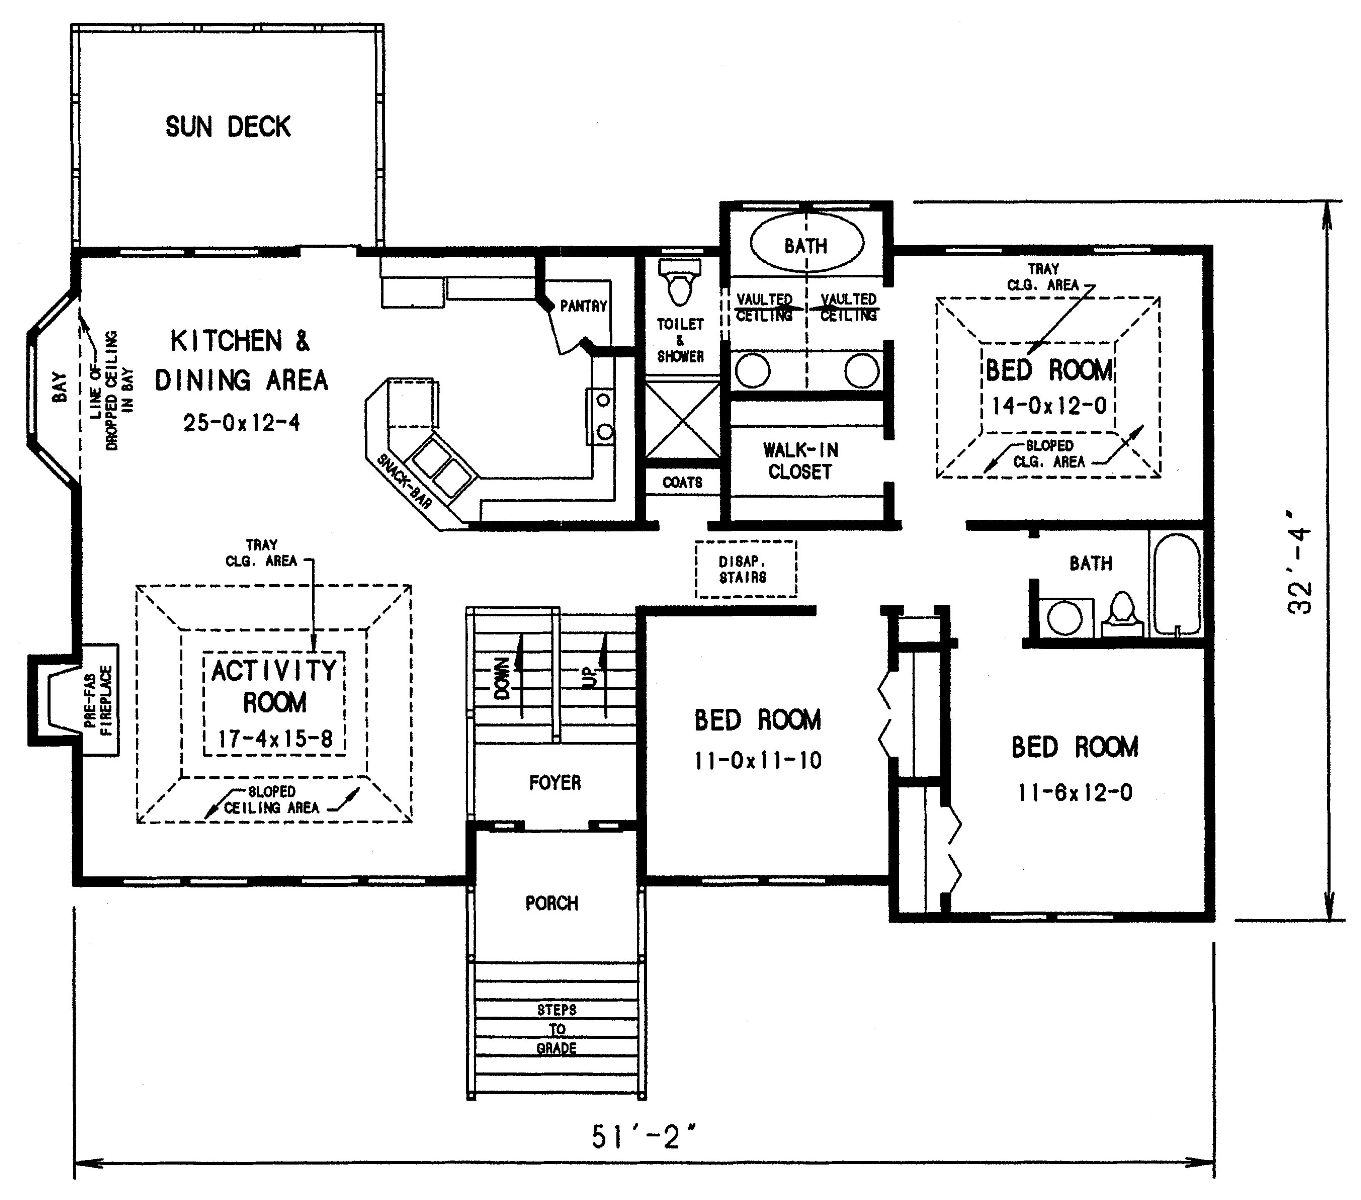 Open Foyer Floor Plan : The dahlonega bedrooms and baths house